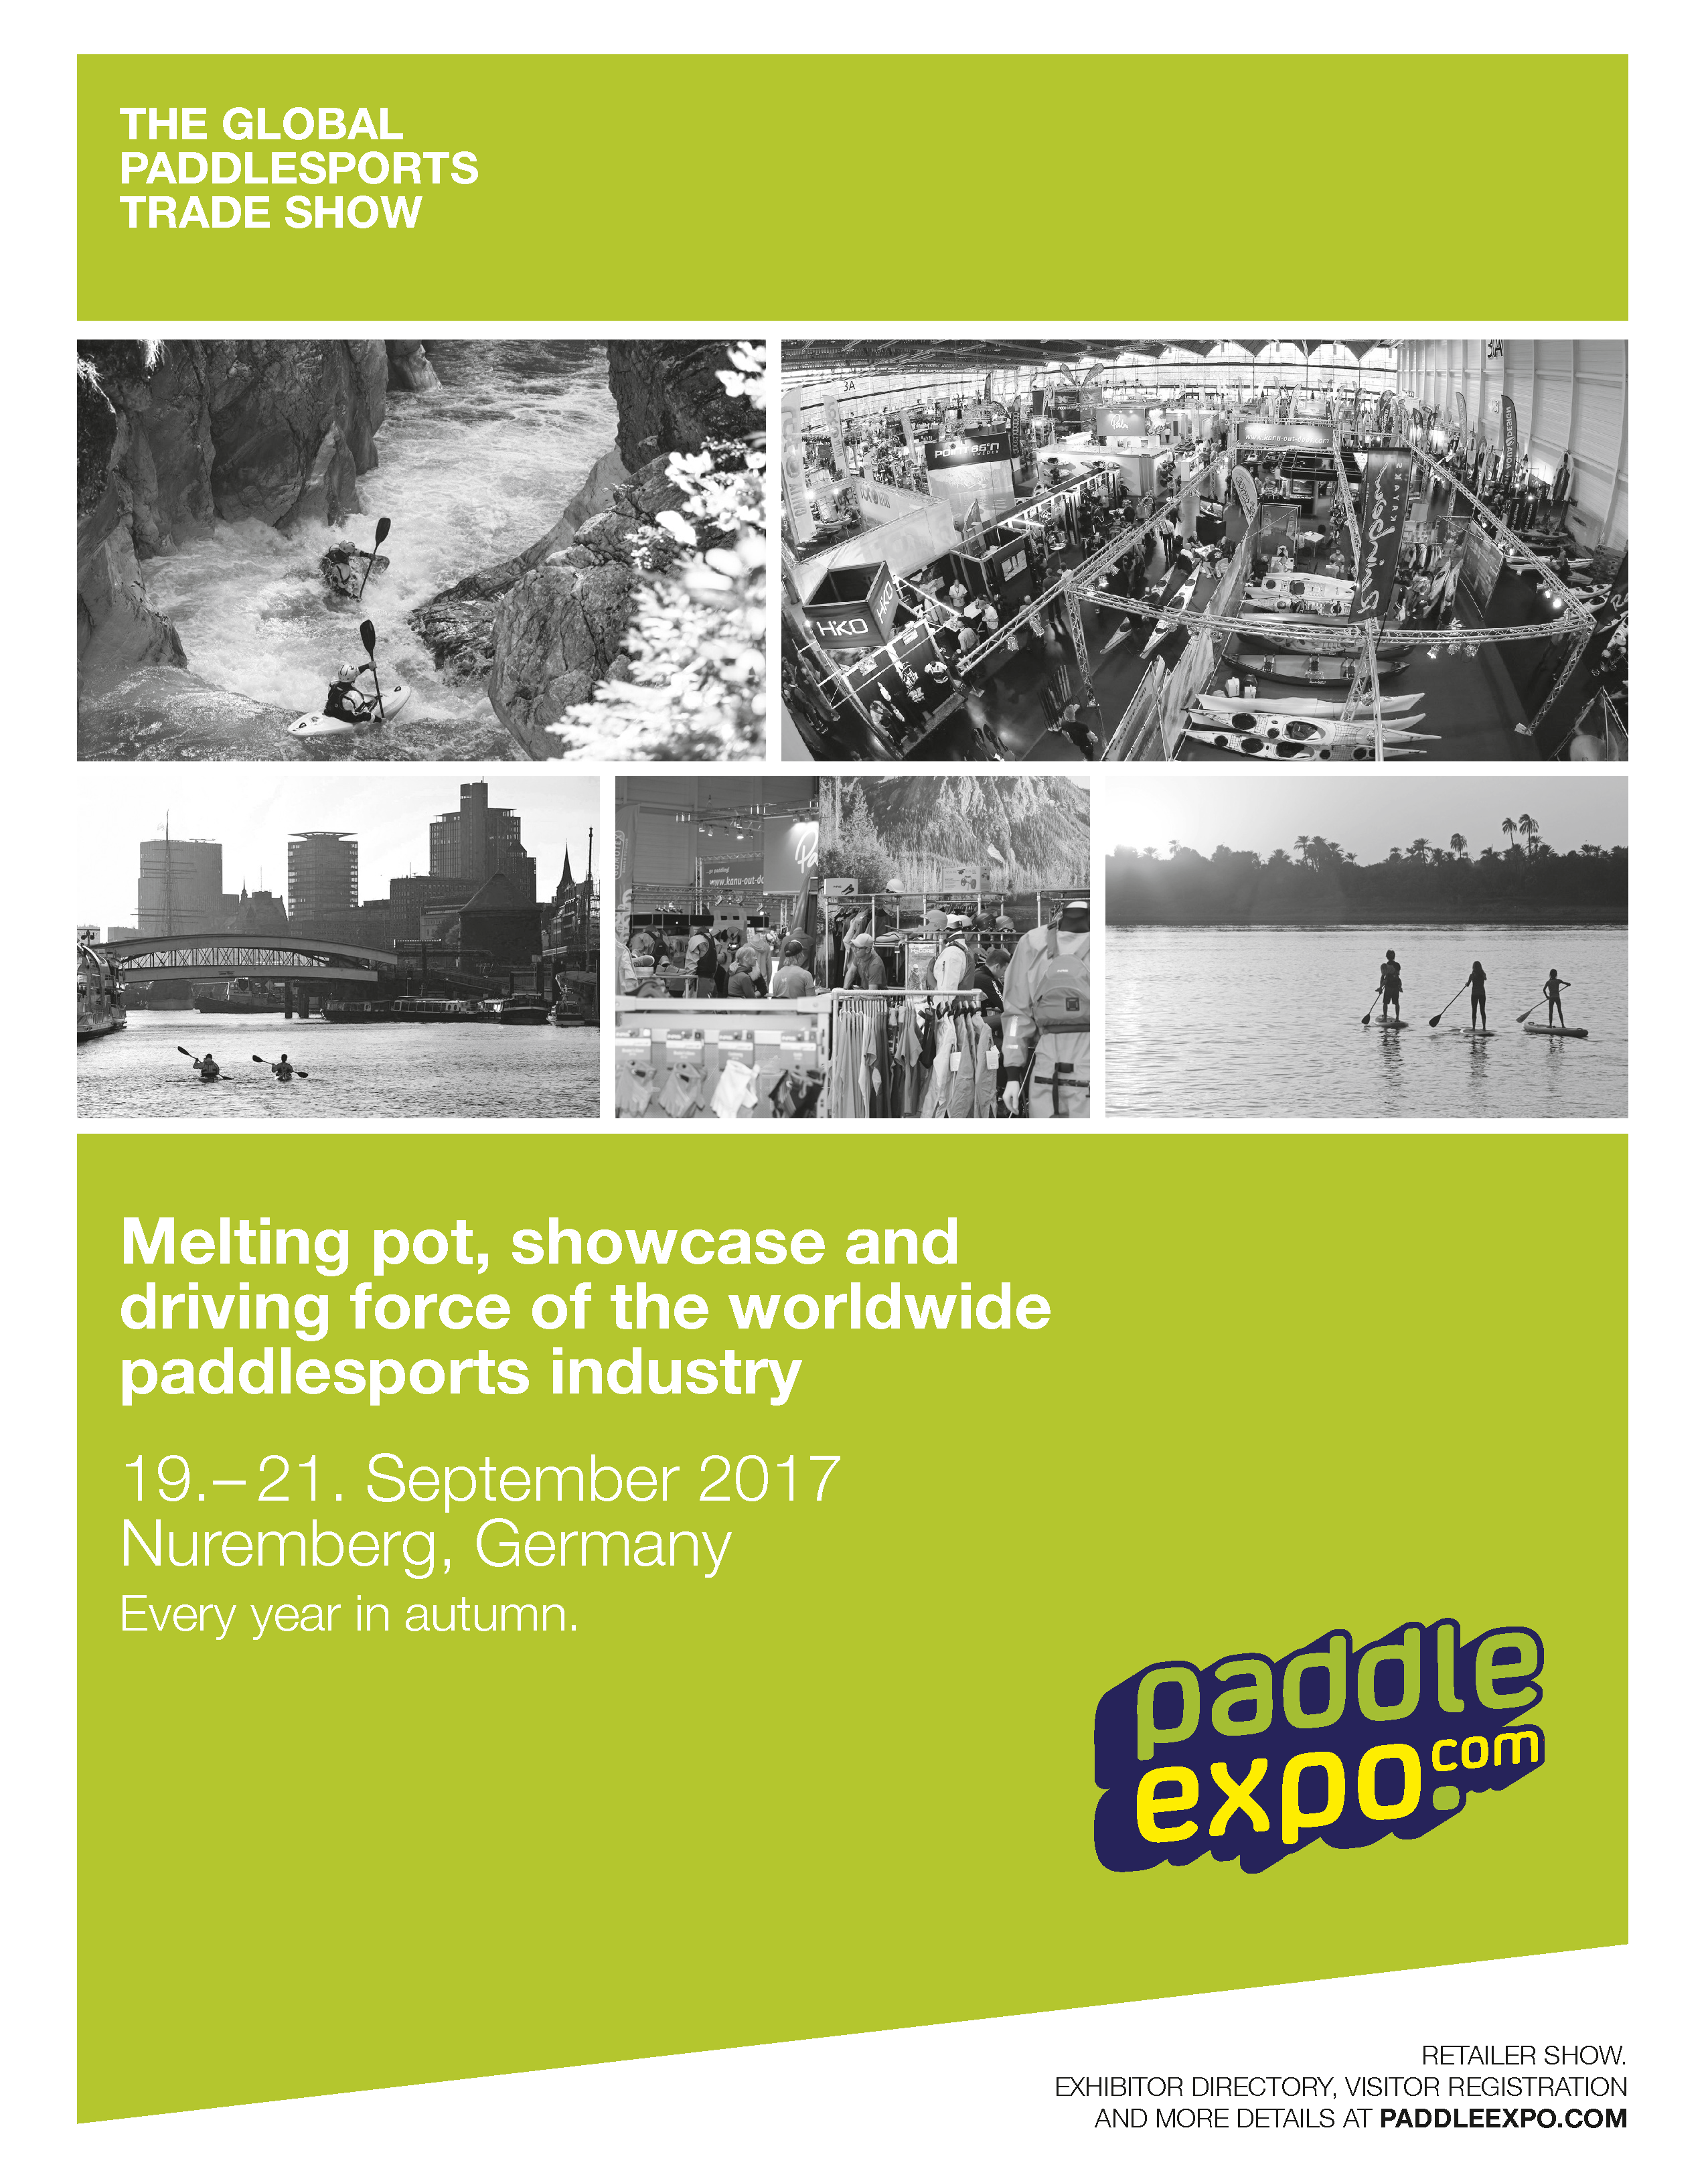 87 Paddle Expo TRADE